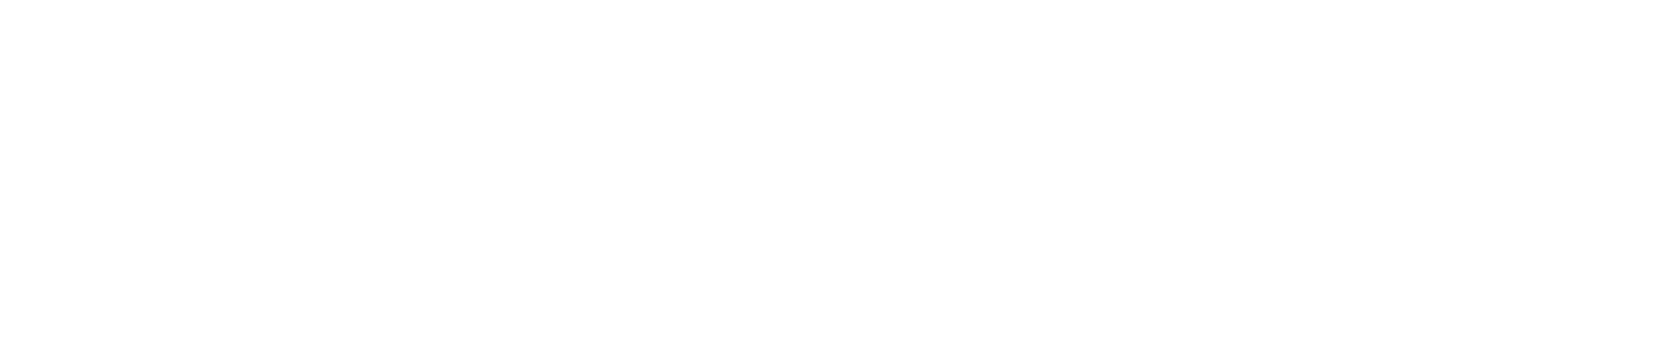 KoWMasters - Kings of War UK Organised Play